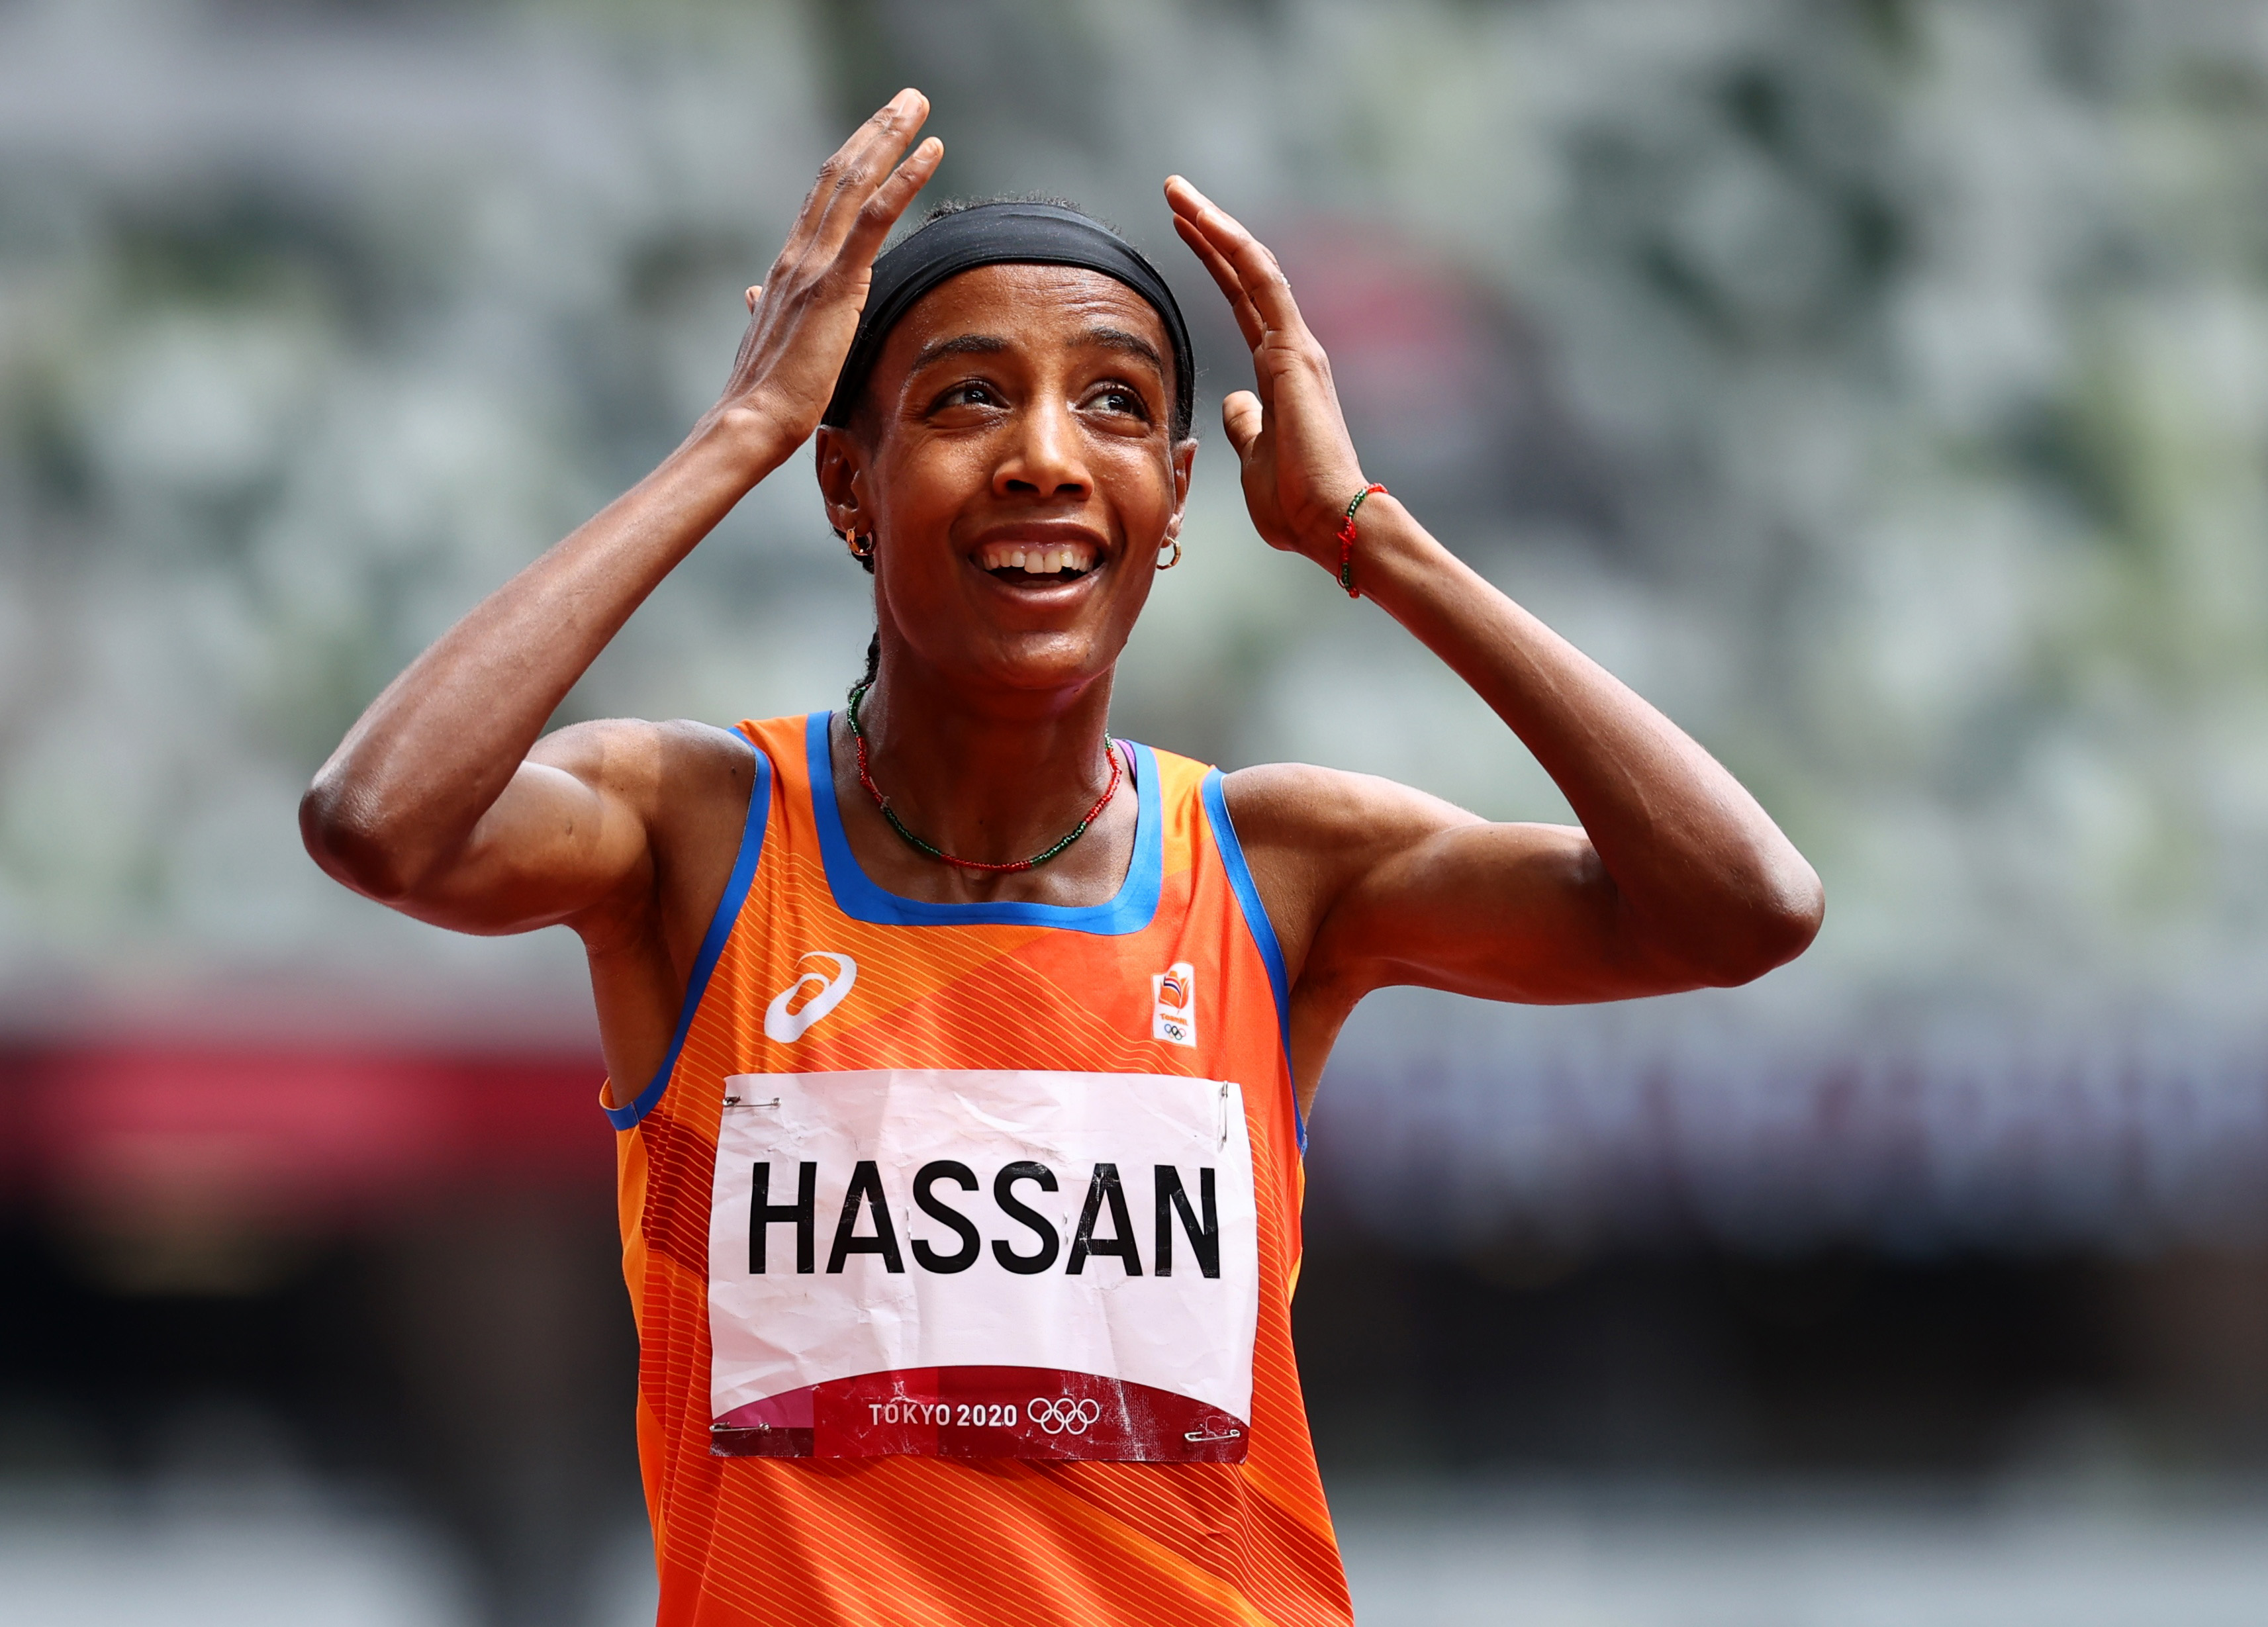 Tokyo 2020 Olympics - Athletics - Women's 1500m - Round 1- OLS - Olympic Stadium, Tokyo, Japan - August 2, 2021. Sifan Hassan of the Netherlands reacts after competing REUTERS/Lucy Nicholson - SP1EH8202TZ5J